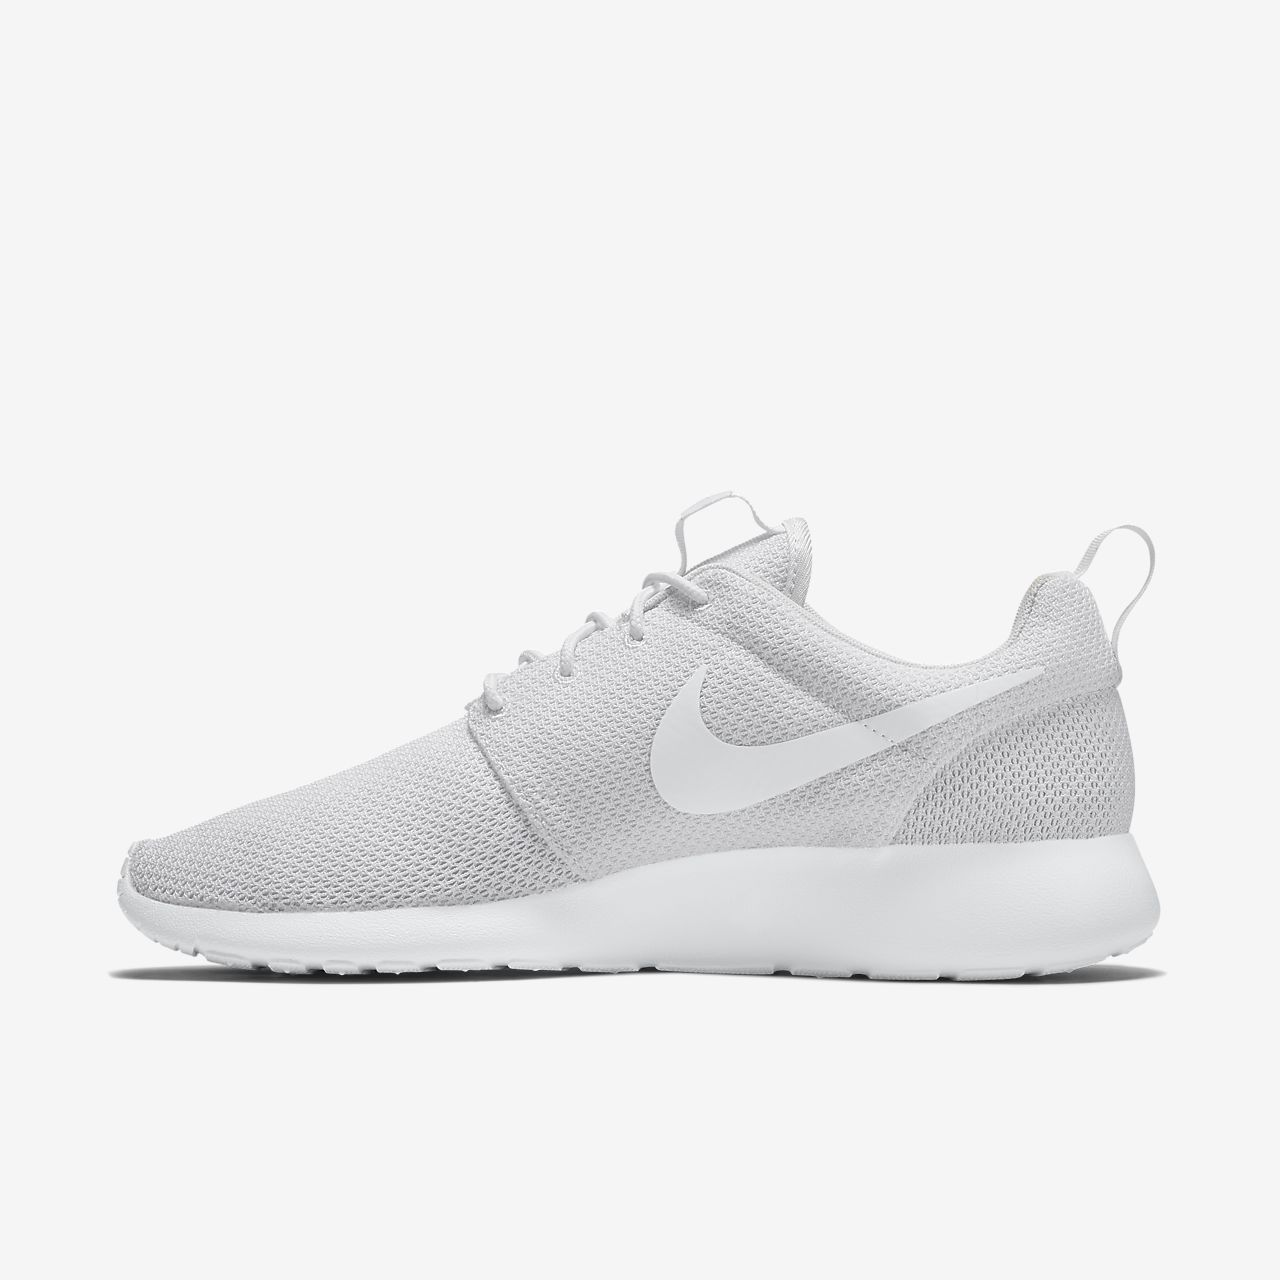 new style 37b16 e5e2e online store 3a8af 3b81e 2018 roshe run nike red grey men ...